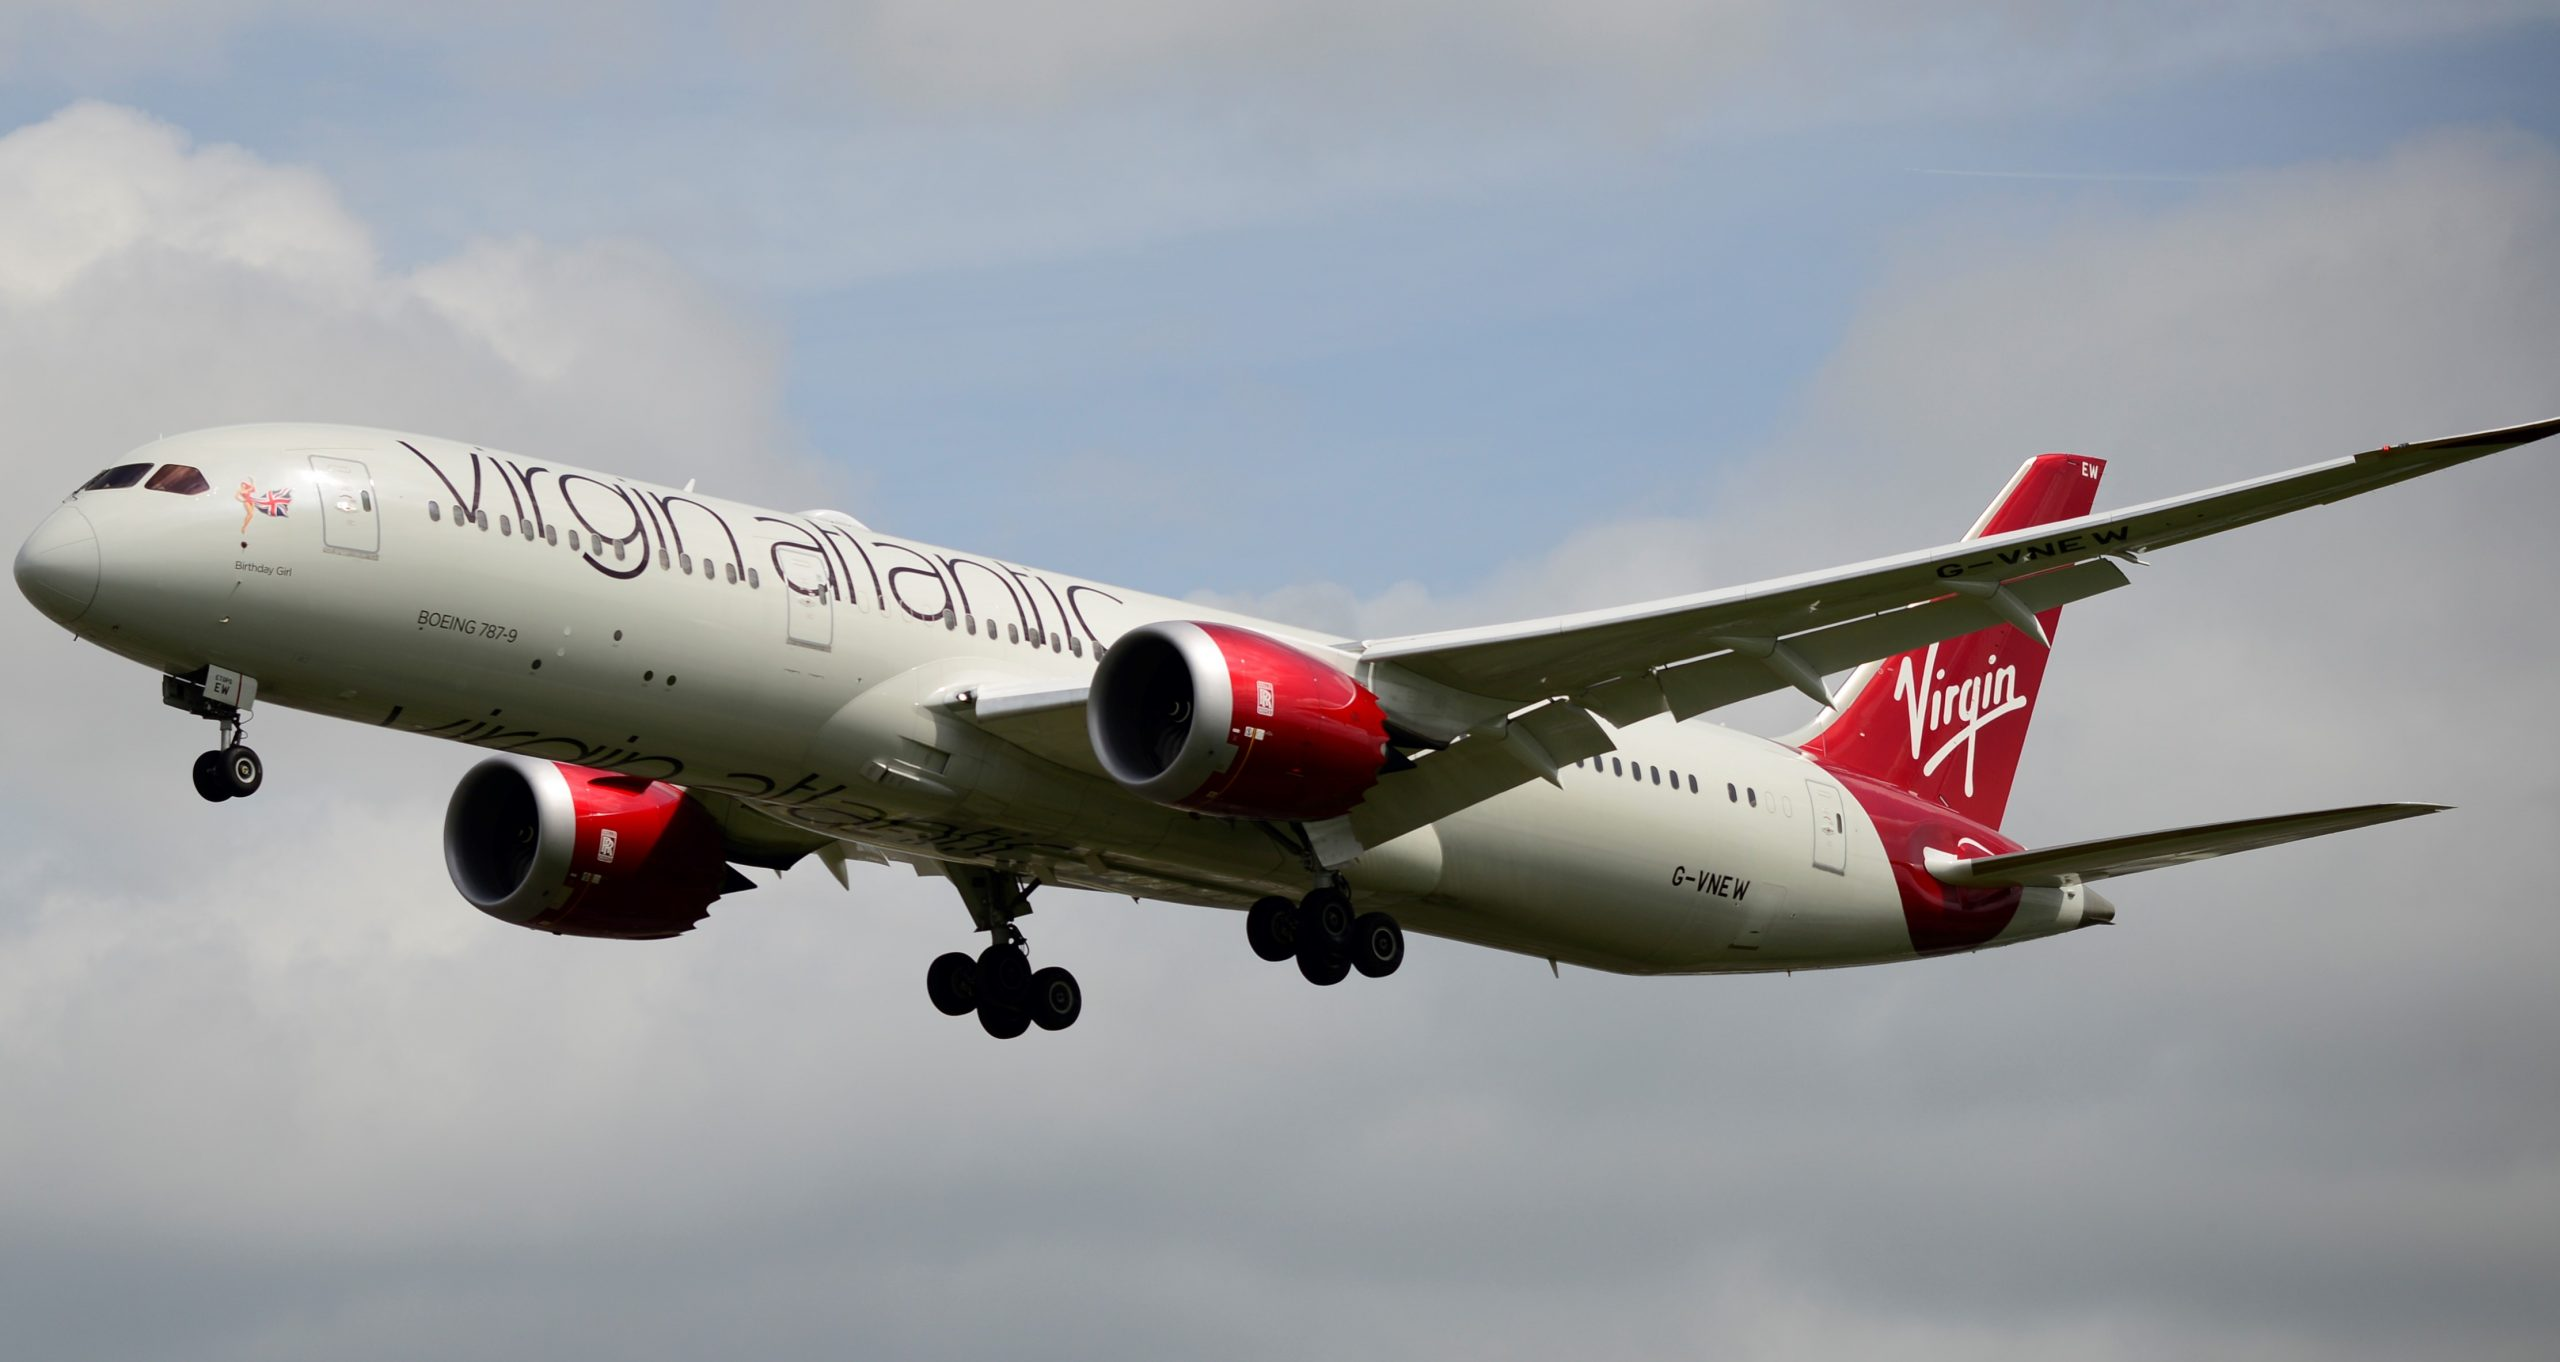 Virgin Atlantic Raises Fresh Cash On Latest Boeing 787-9 Deal